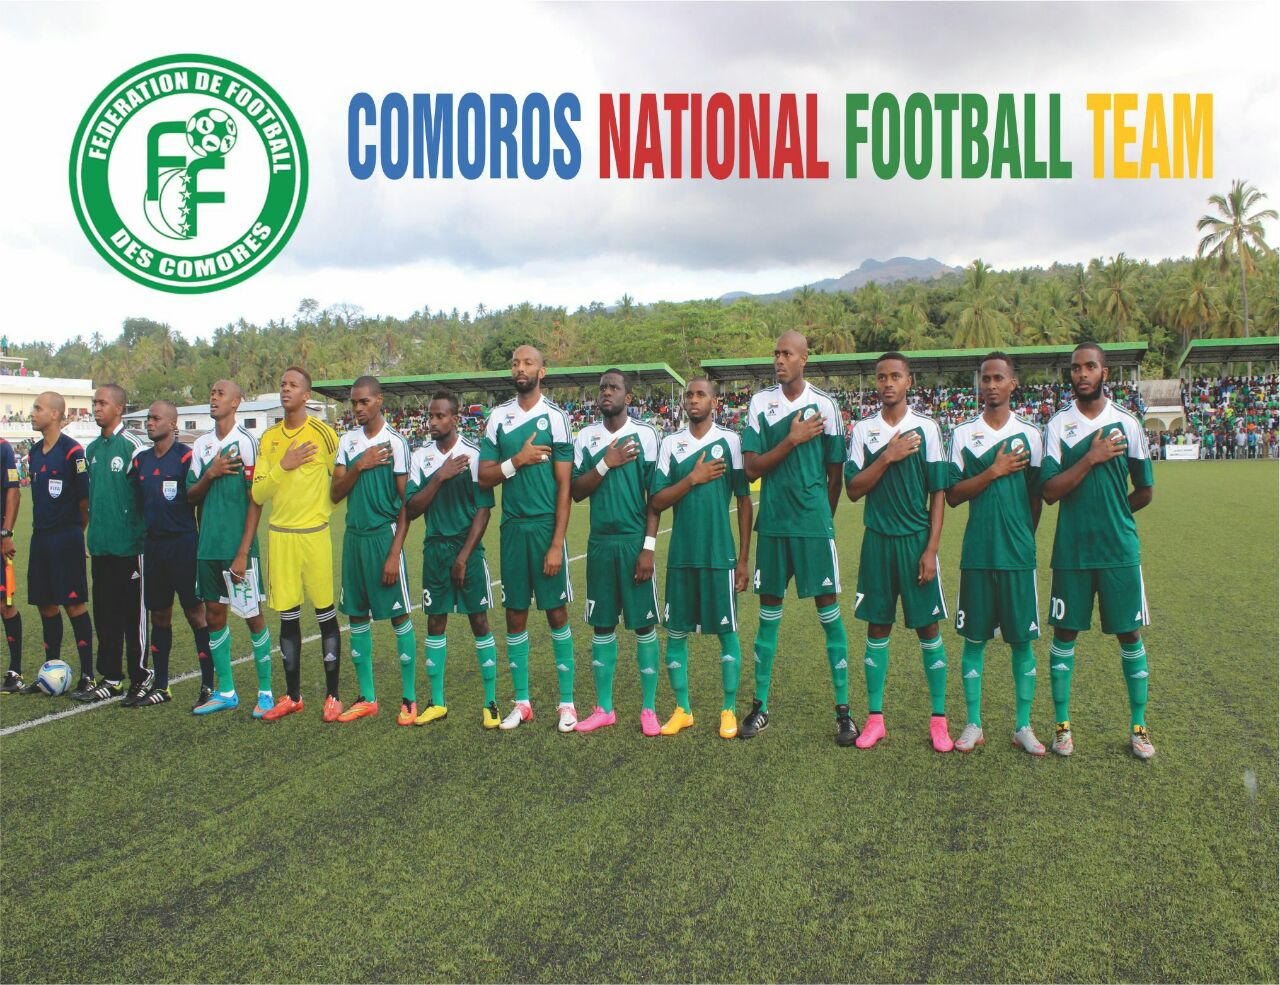 Comoros Football Team